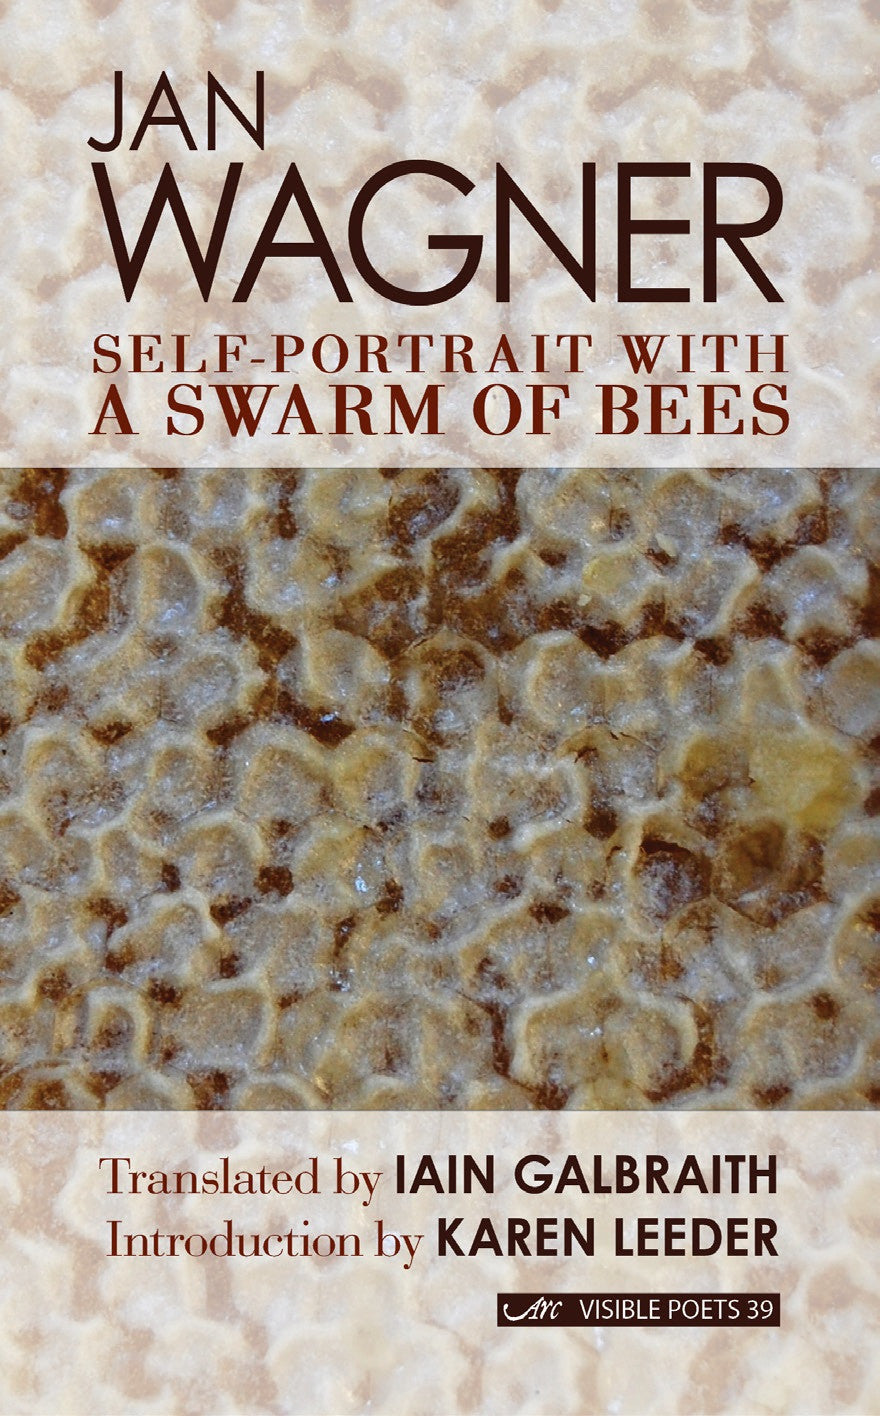 Self Portrait with a Swarm of Bees